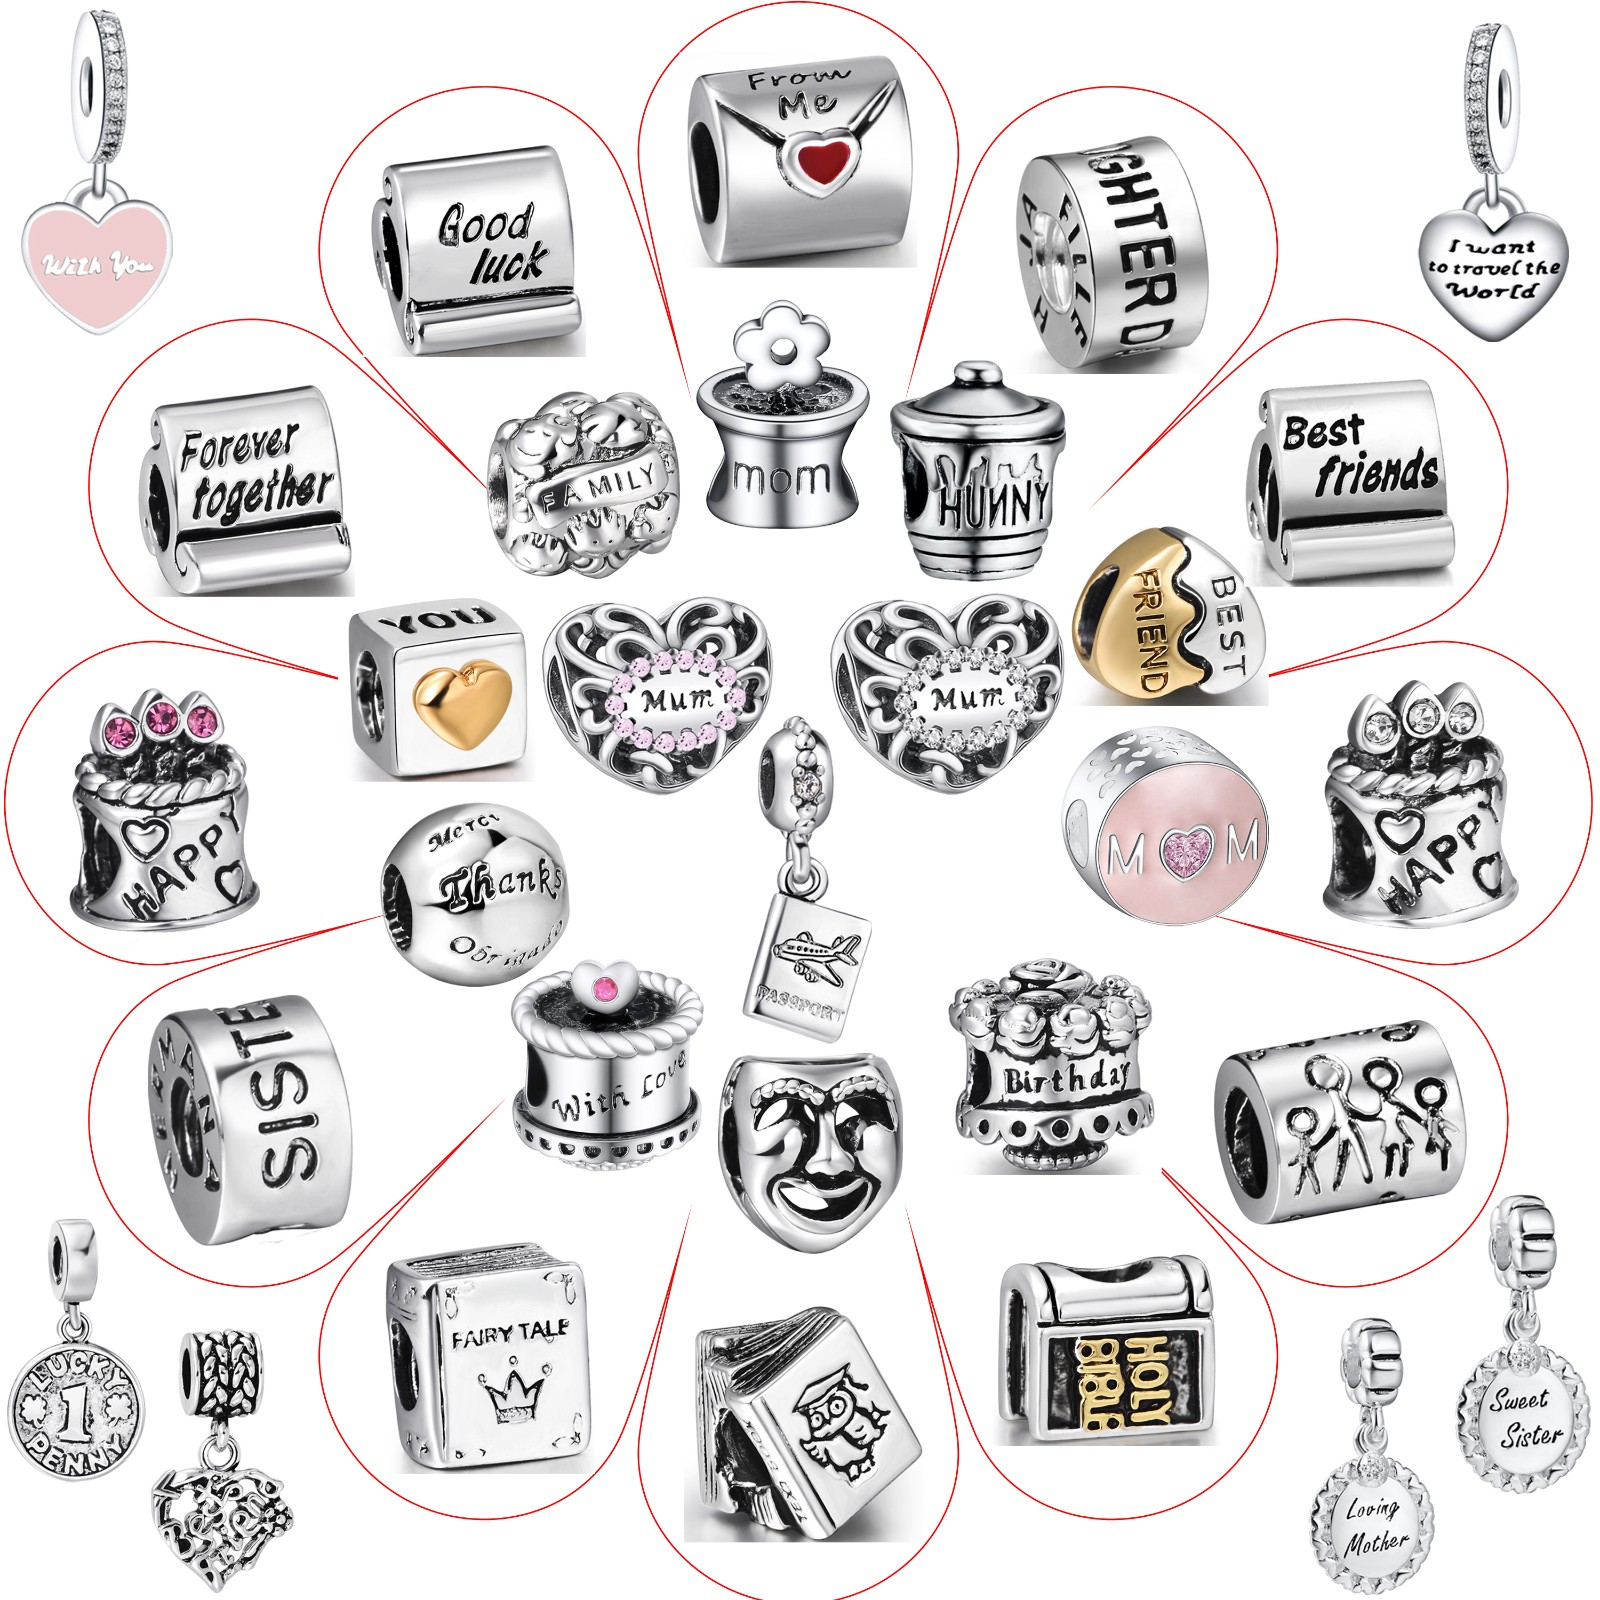 US Passport USA Travel .925 Solid Sterling Silver European Dangle Bead Charm for Pendant or Bracelet by Charm Crazy